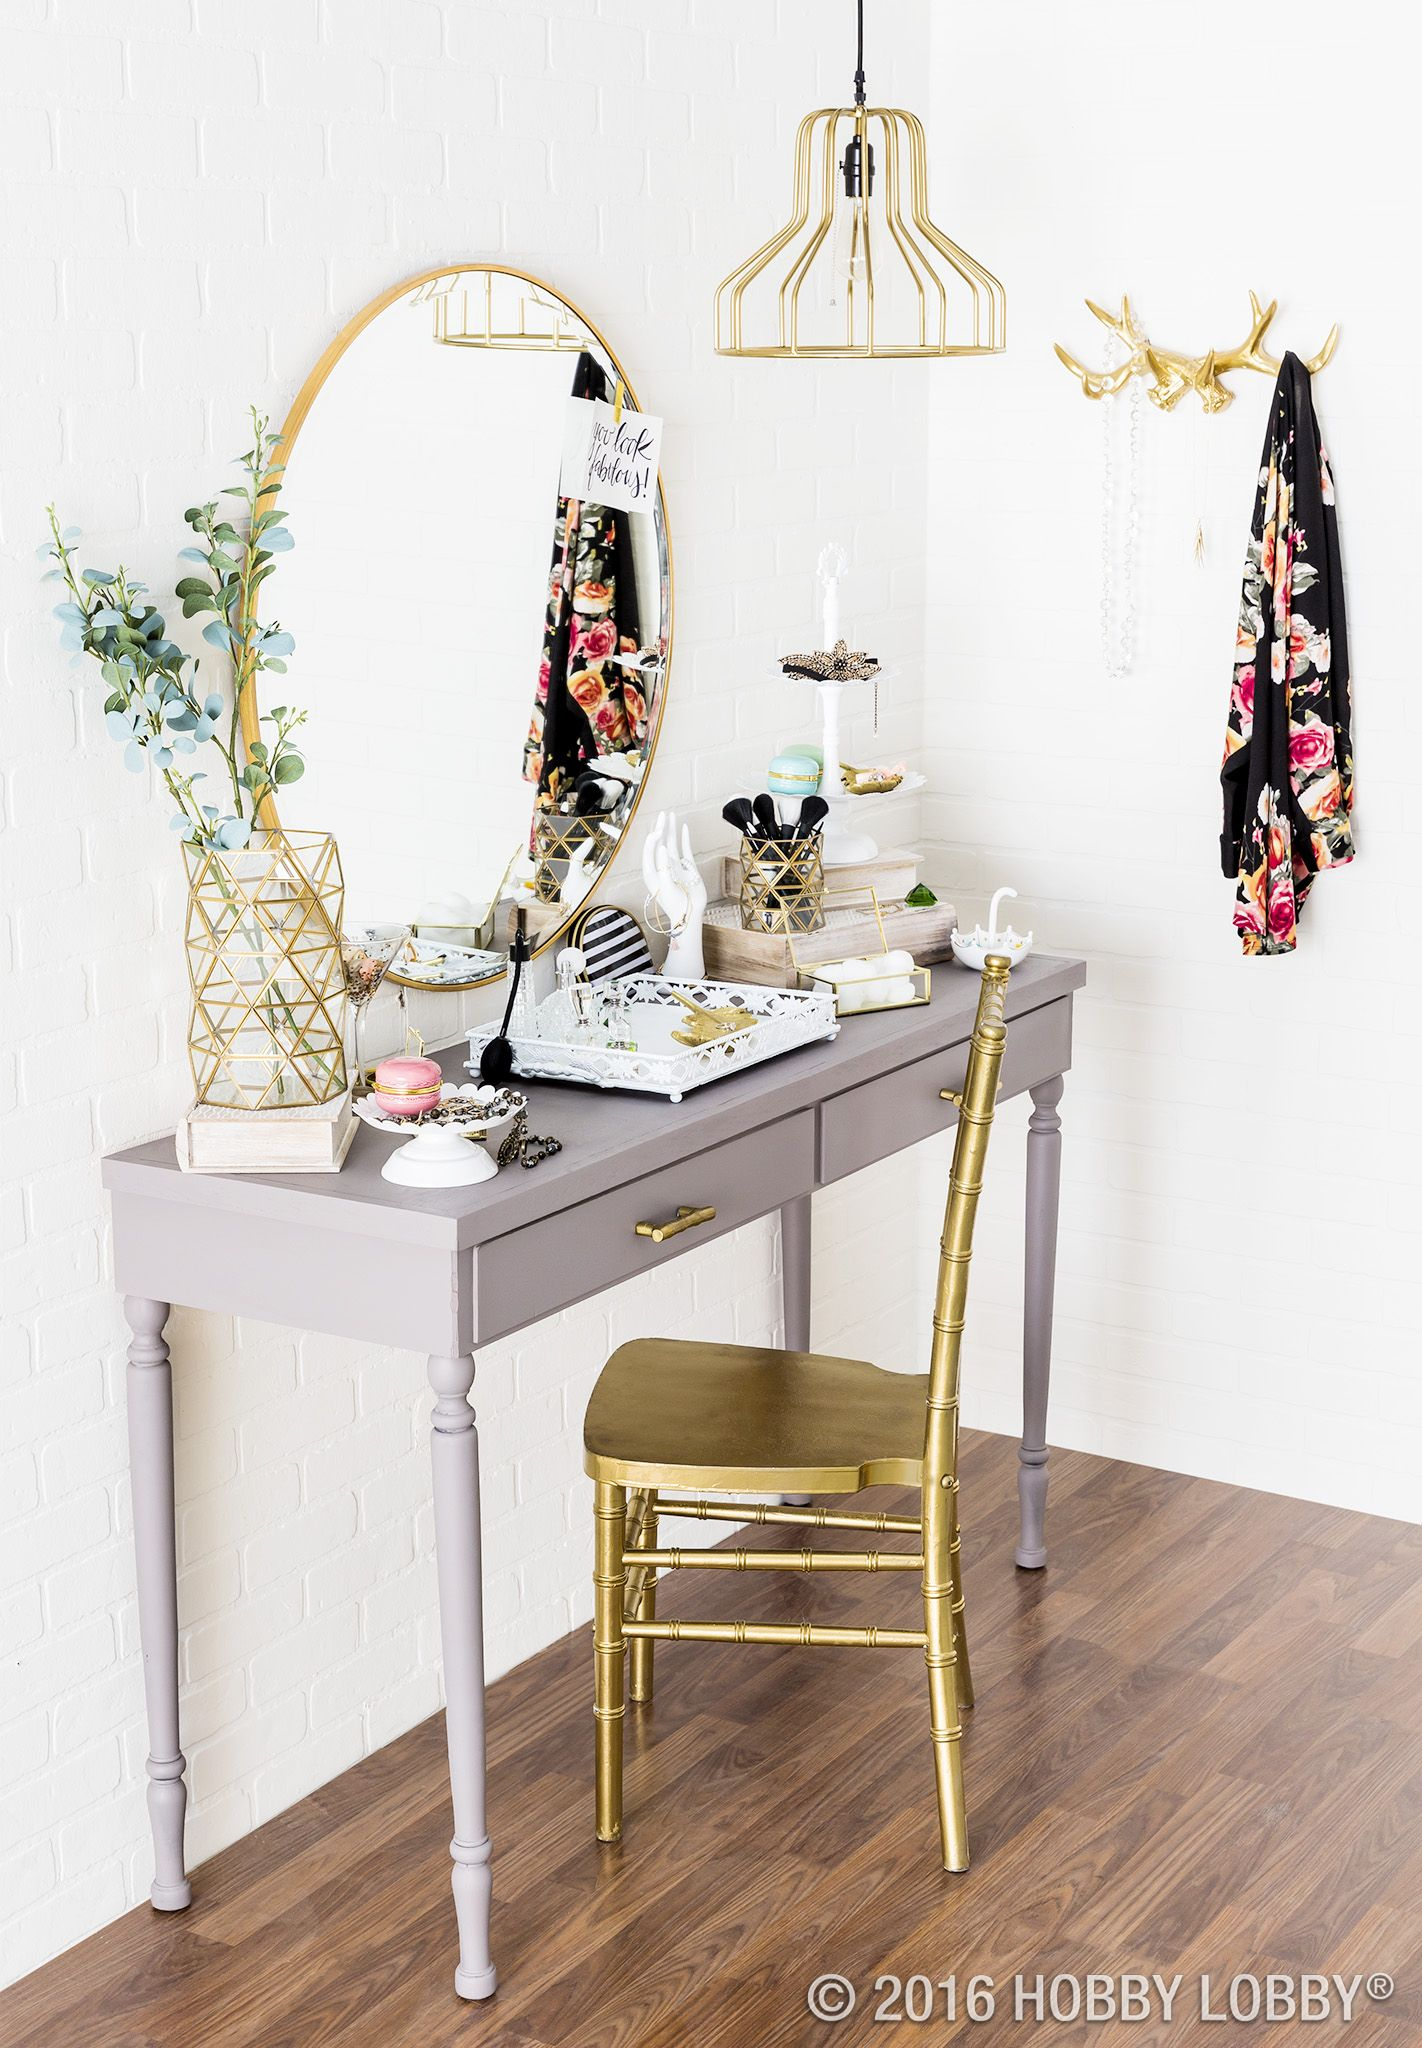 Bedroom Vanity Makeup Table Give Your Vanity Boutique Y Vibes With Glamorous Gold